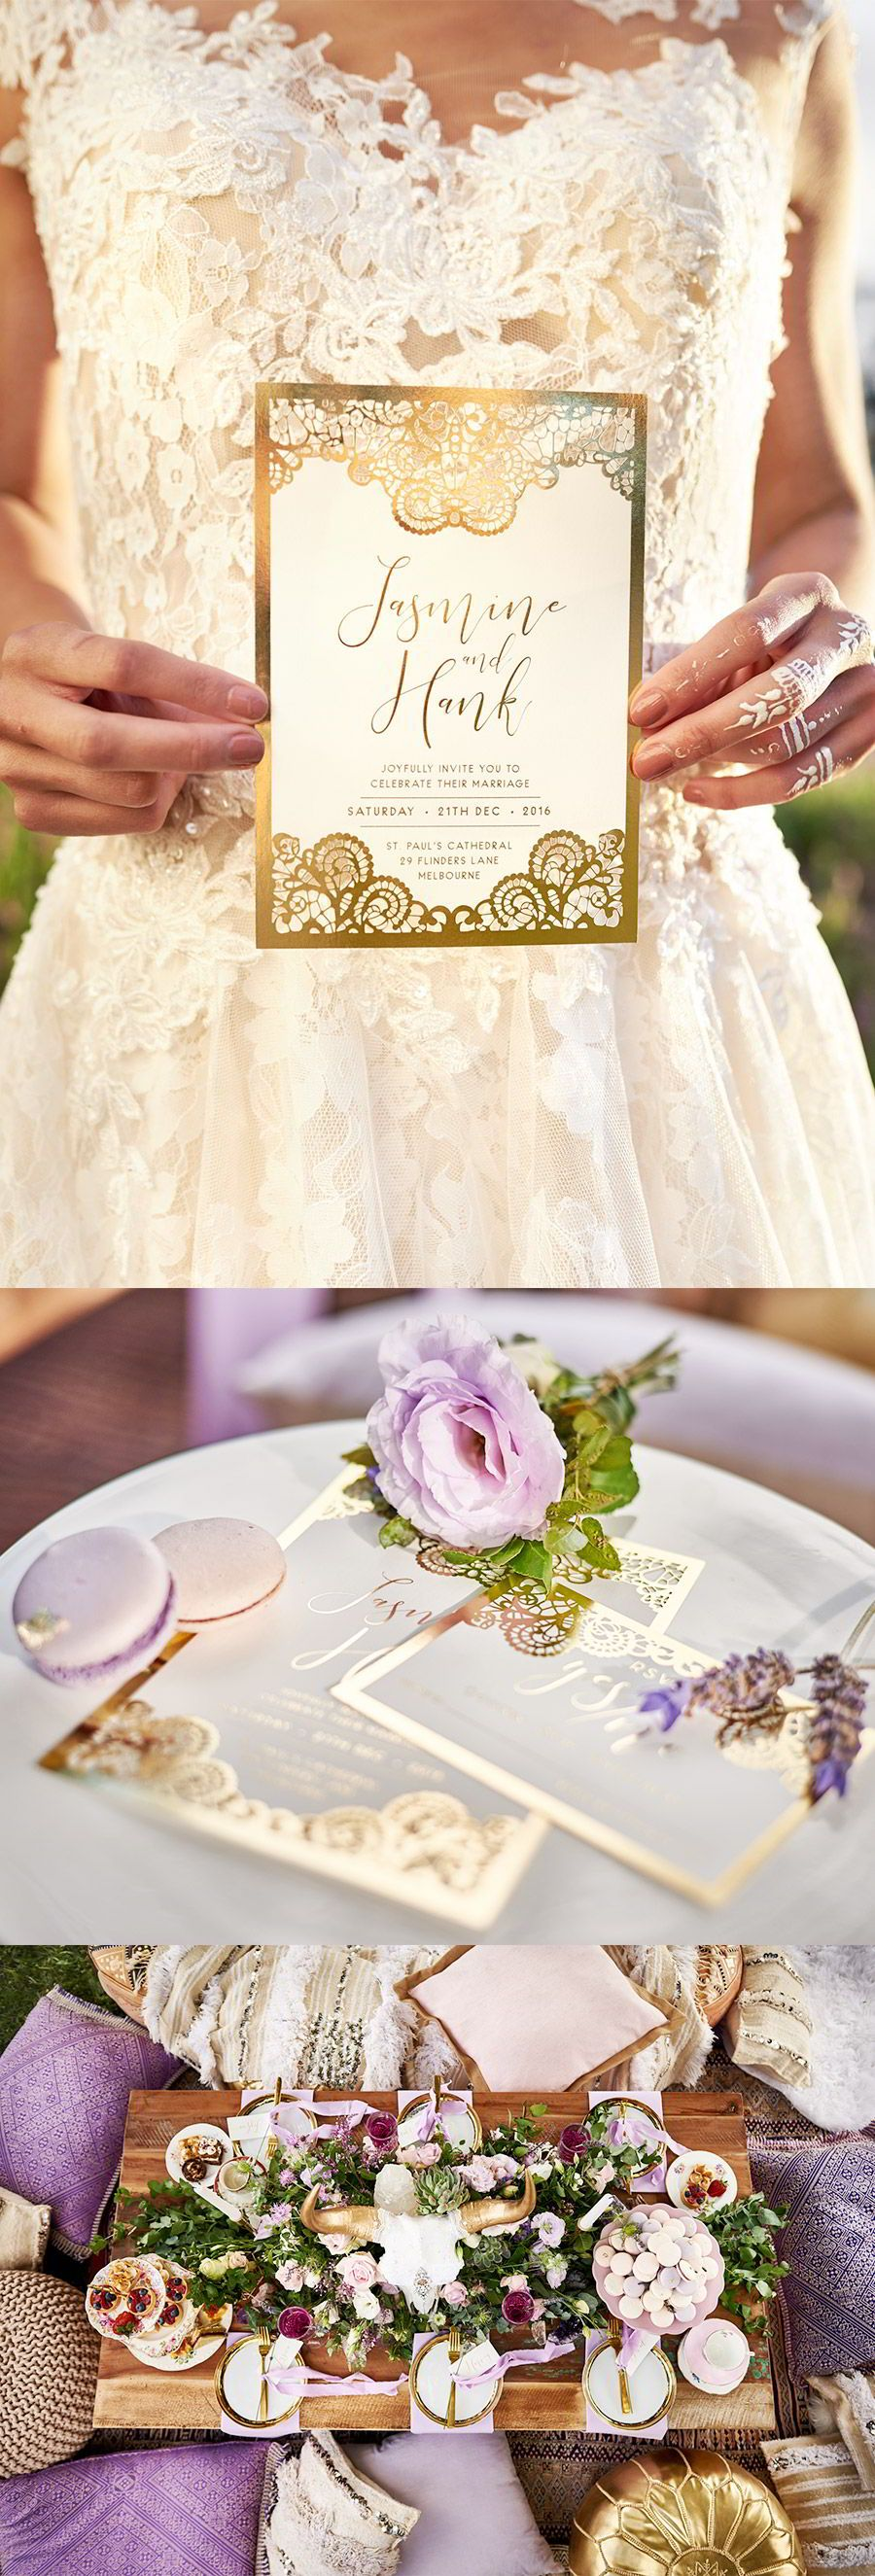 This Boho-Luxe Lavender Inspired Shoot is So Dreamy… | Purple gold ...